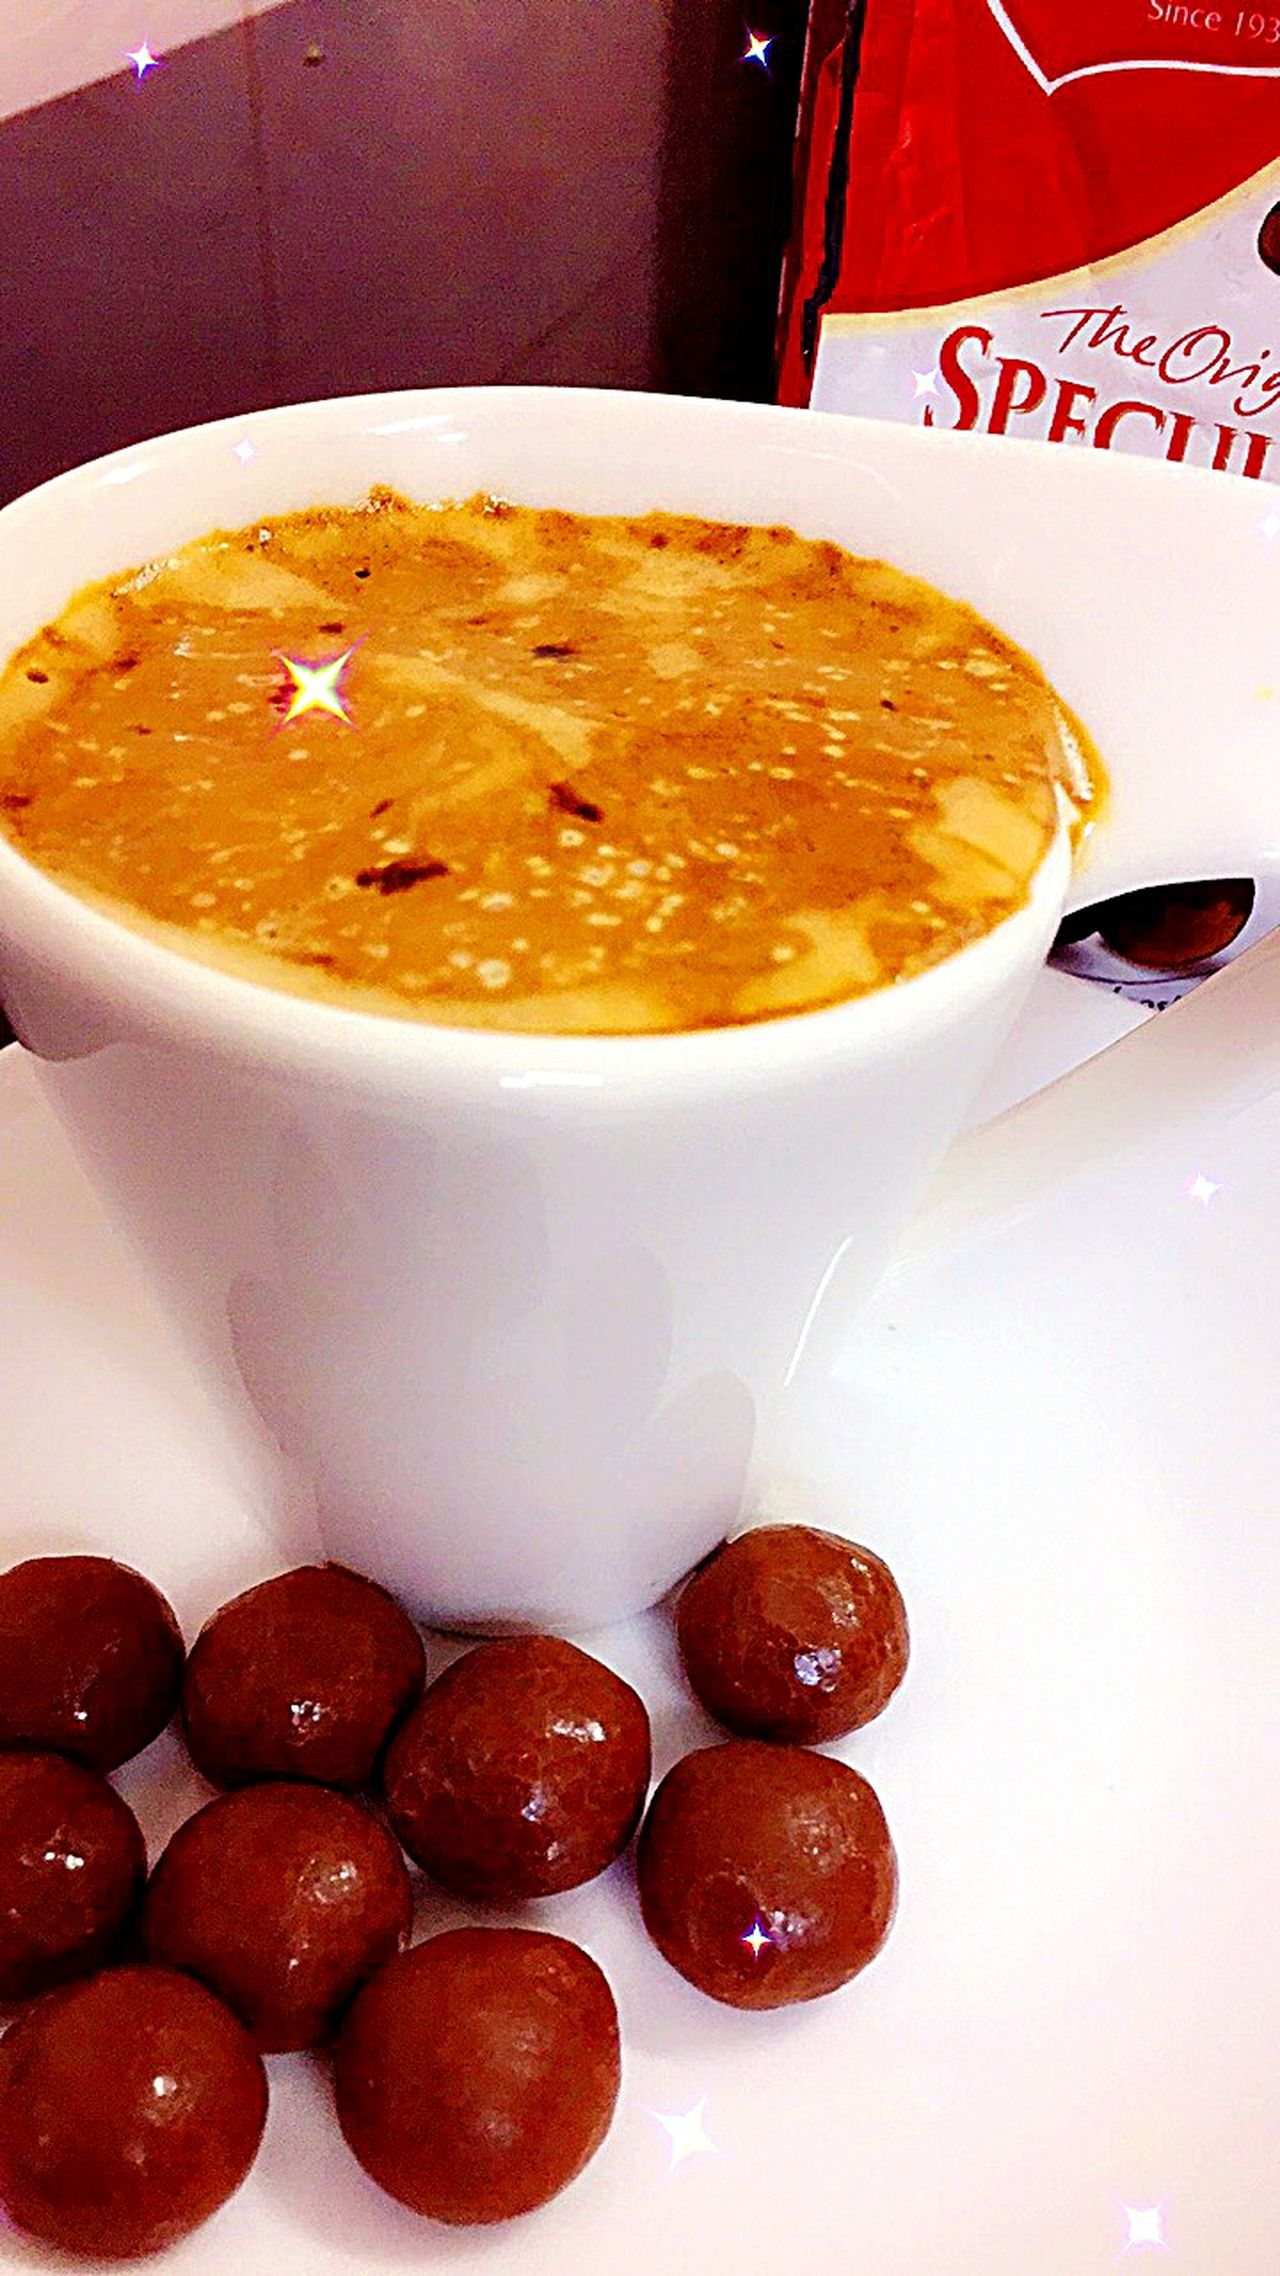 Coofe Time Cappuccino كابتشينو قهوة